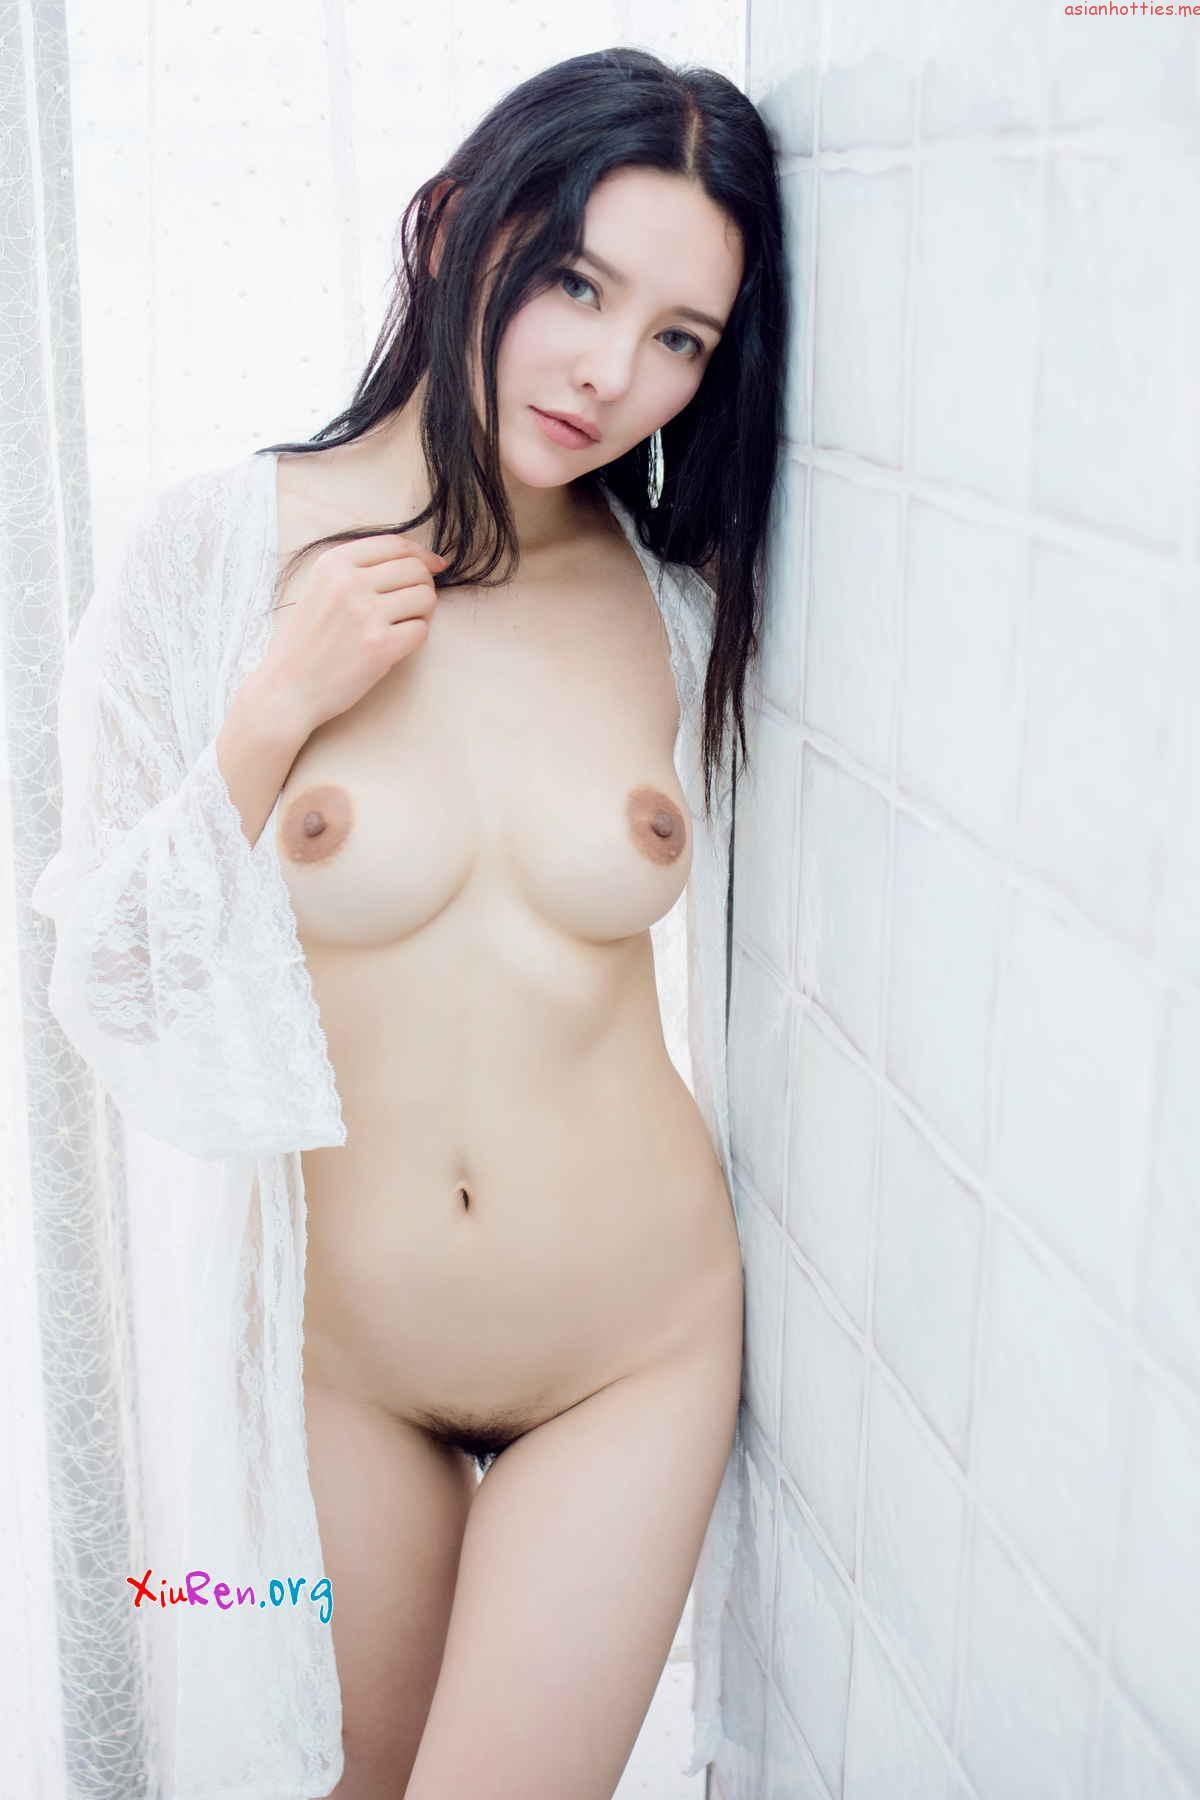 girl naked Chinese nude beauty